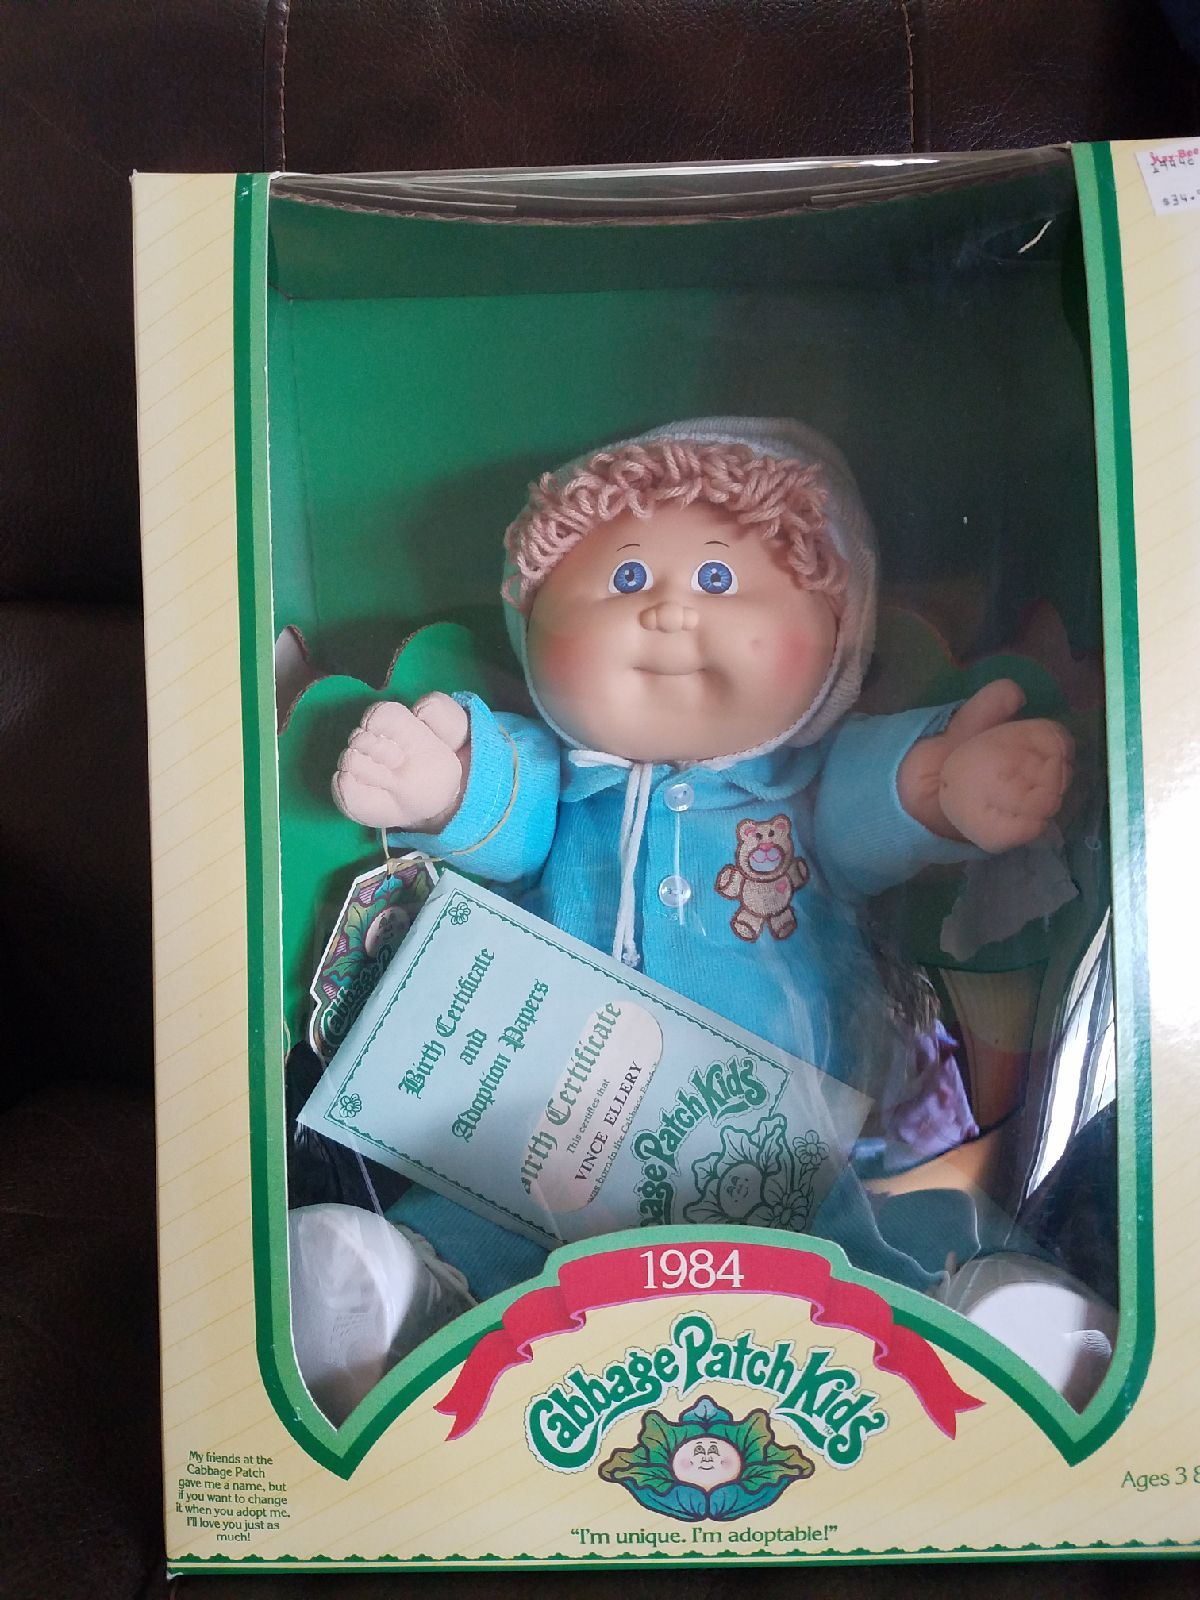 Nib Vintage Cabbage Patch Doll On Mercari Cabbage Patch Kids Dolls Vintage Cabbage Patch Dolls Cabbage Patch Kids